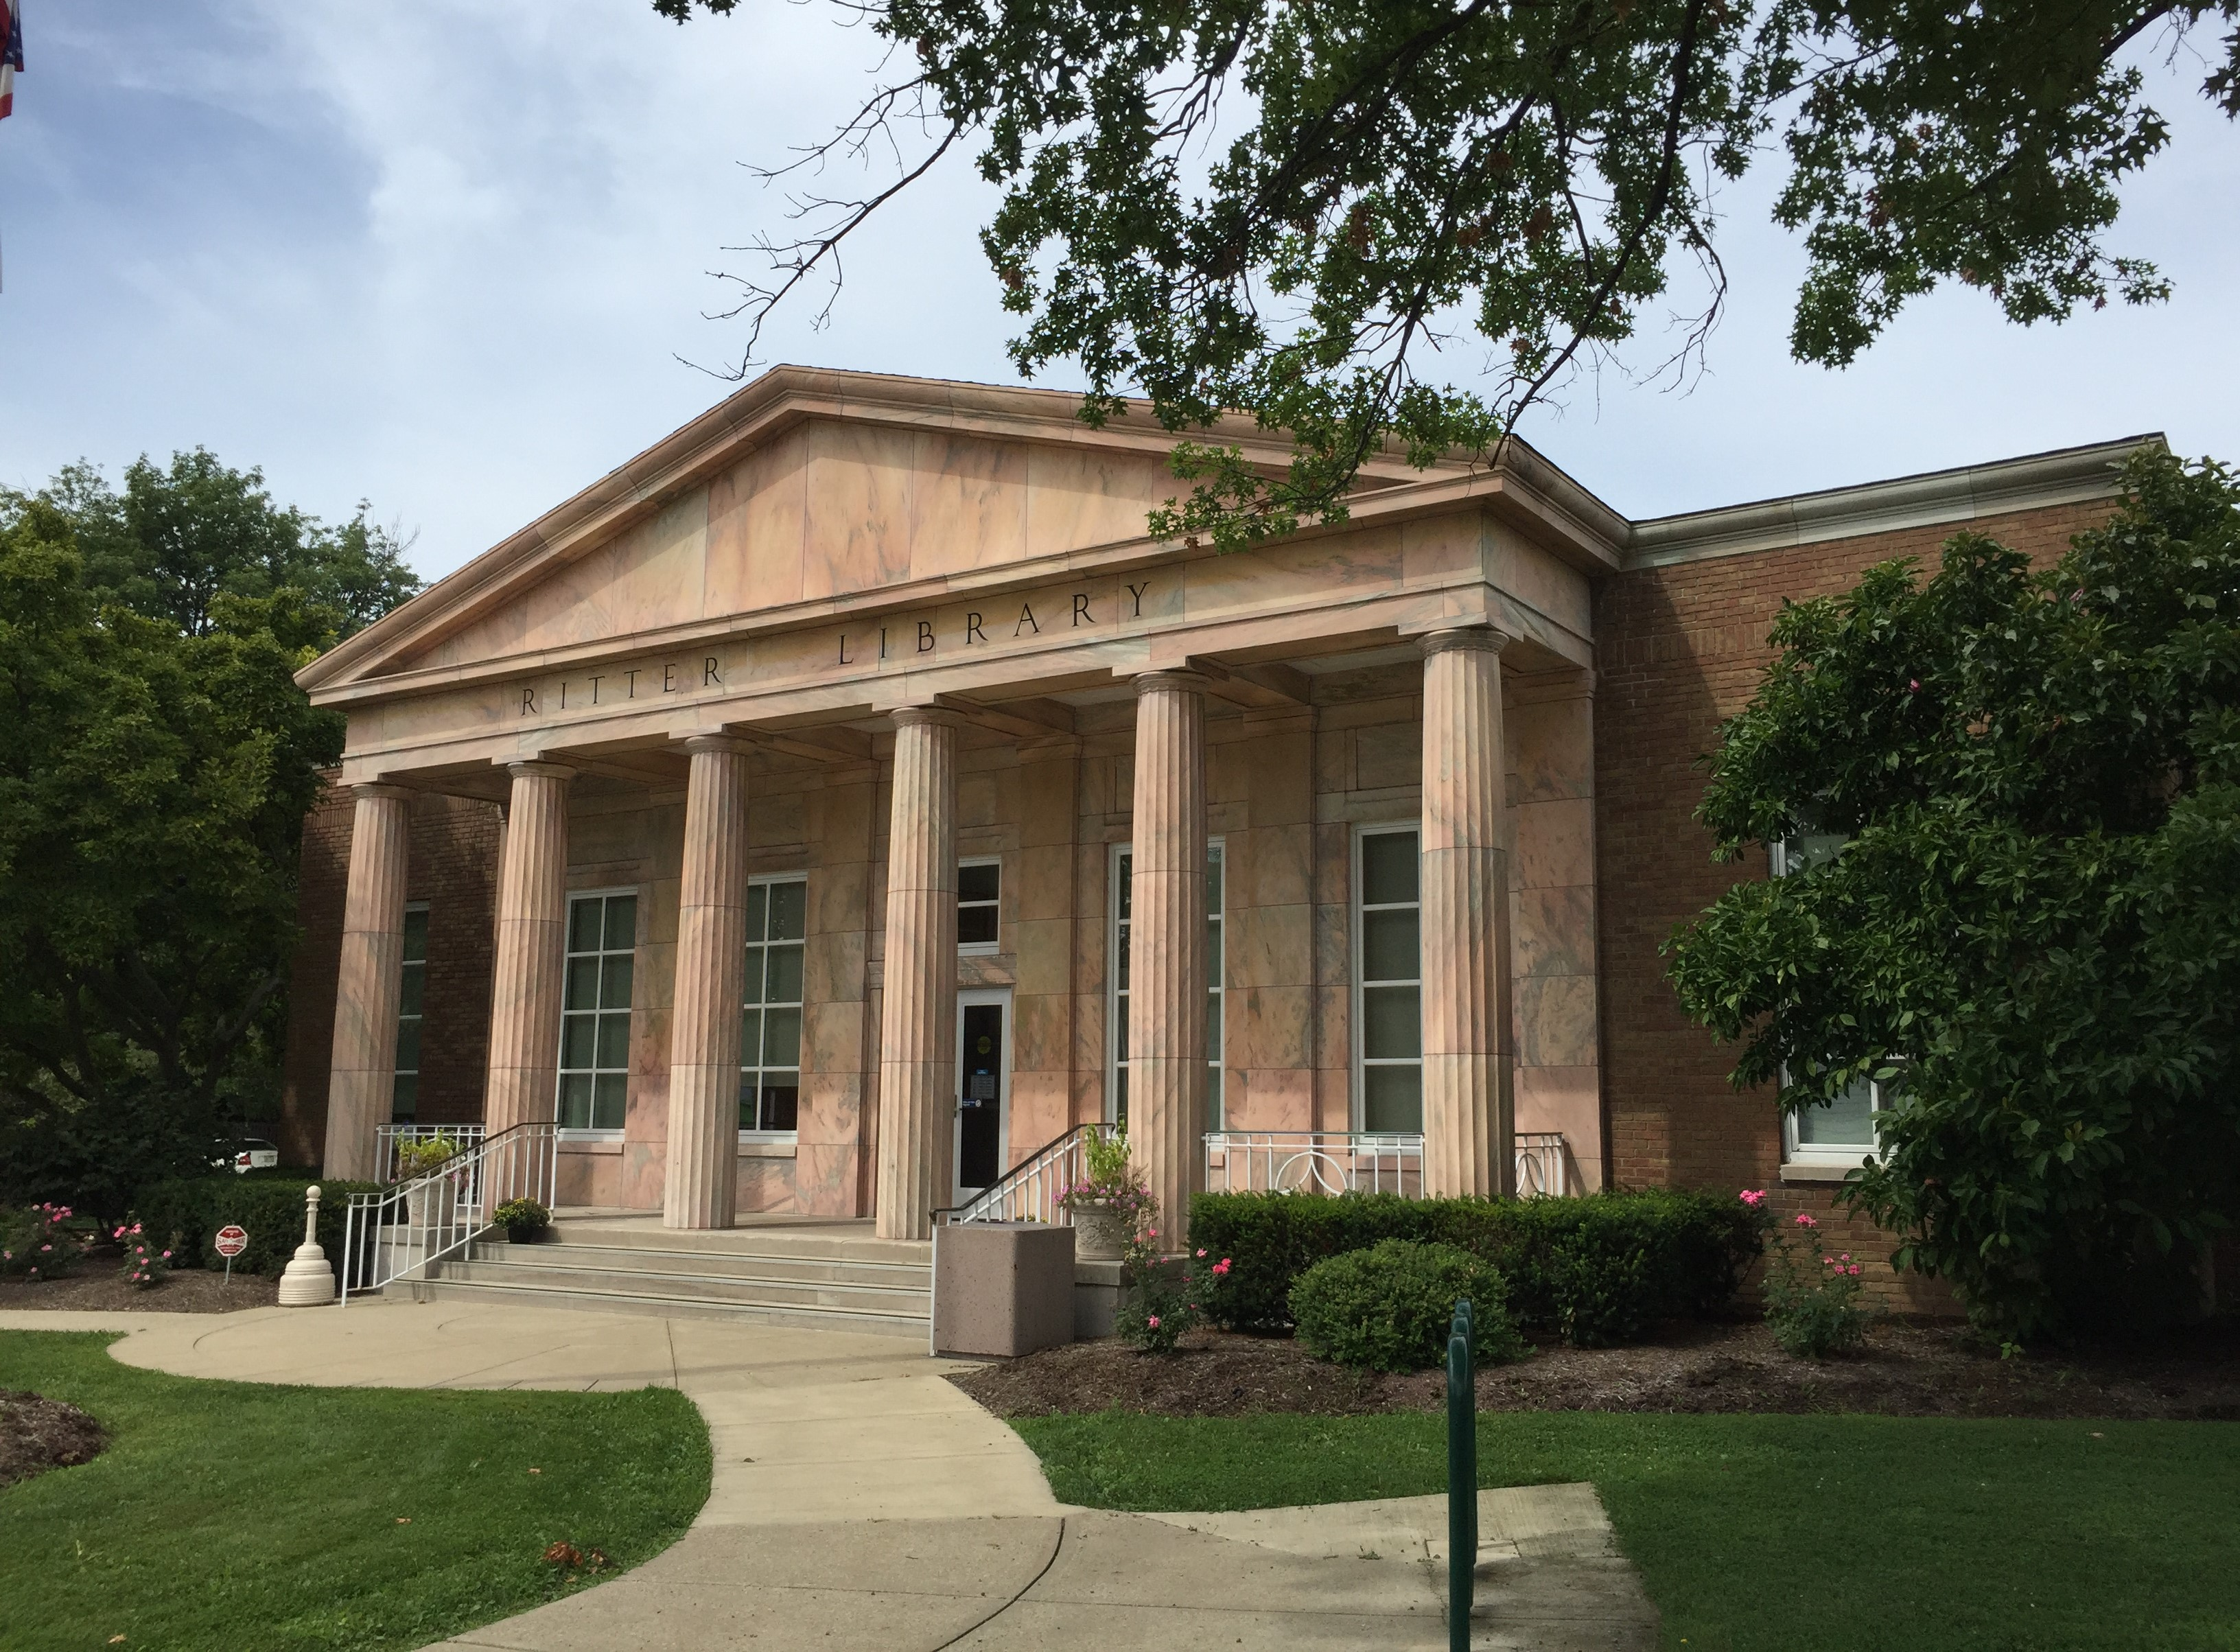 Ritter Public Library, Vermilion, Ohio (Photo: Sarah Sundin, August 2016)